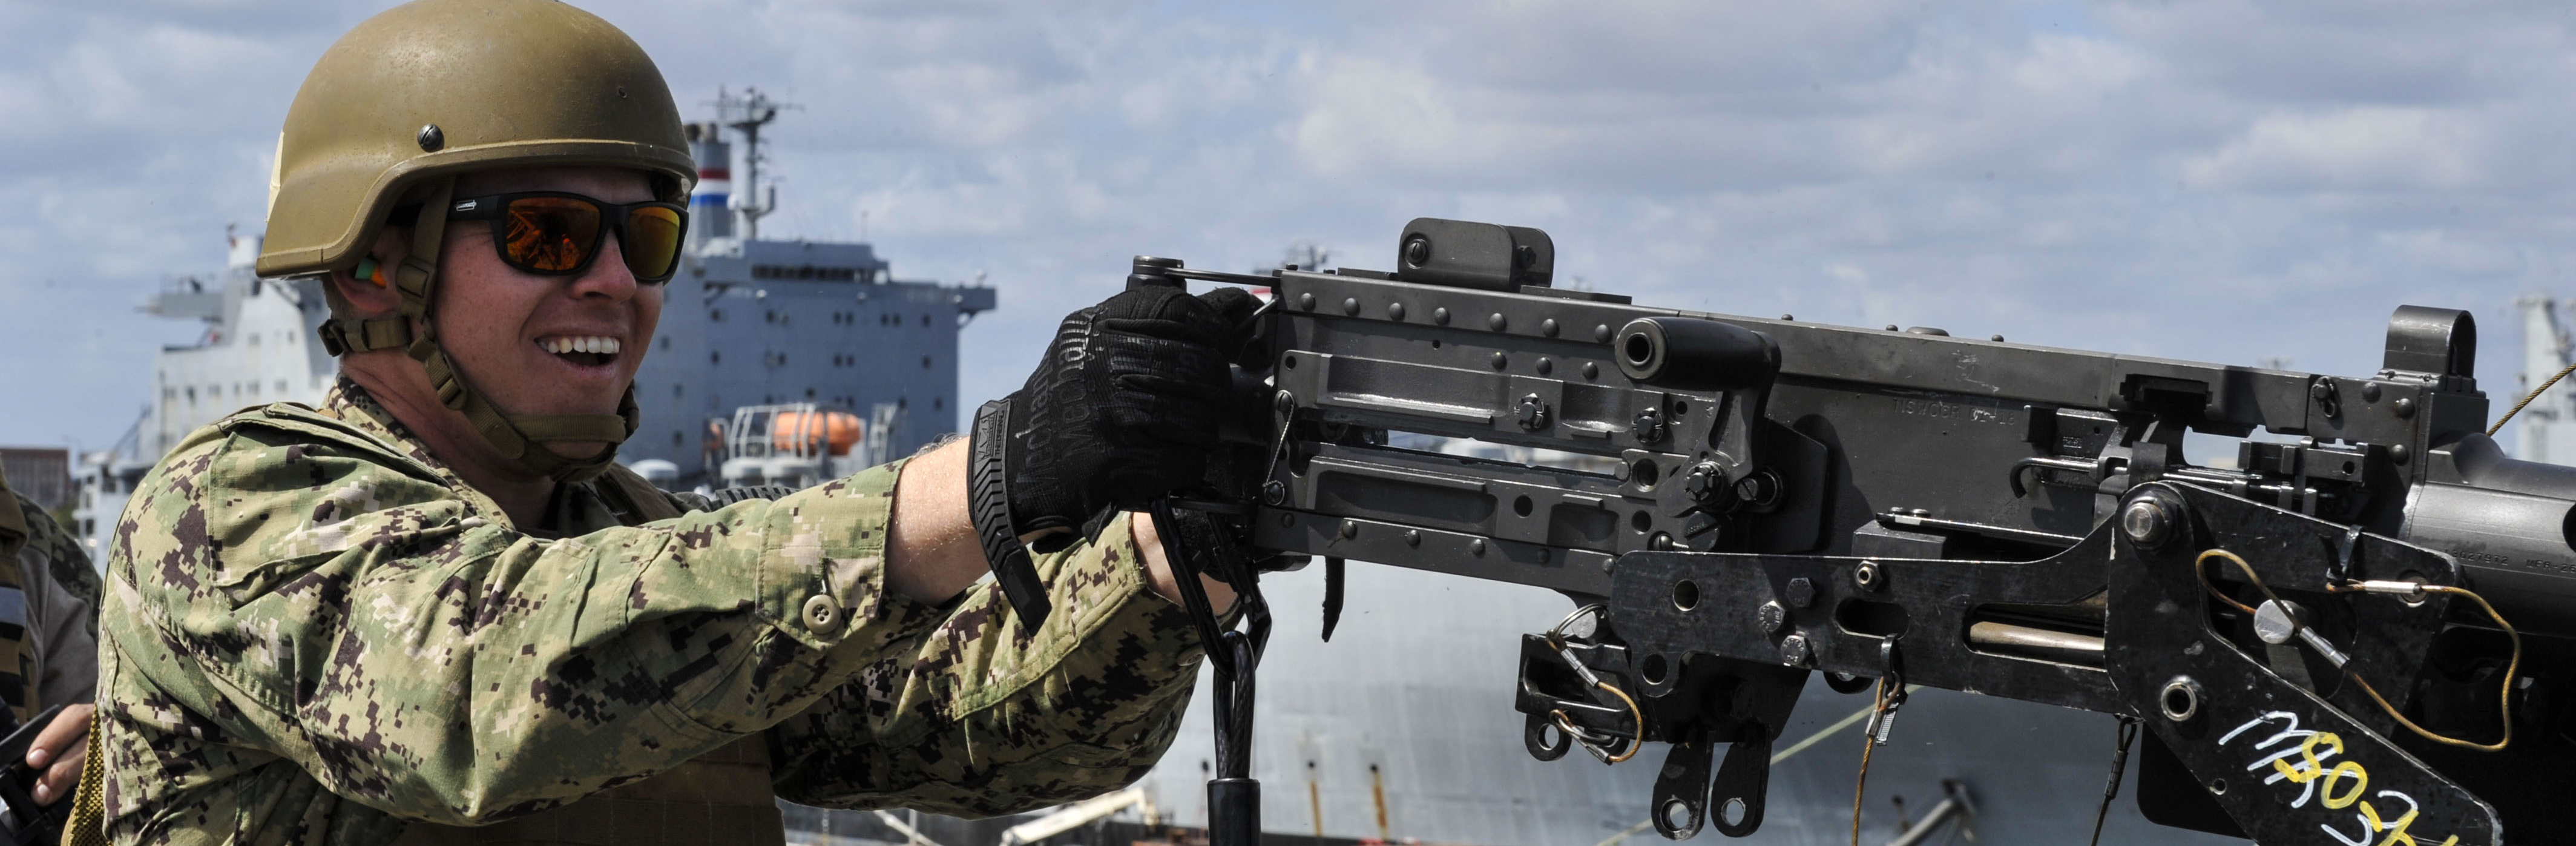 Master-at-Arms Petty Officer 3rd Class Adam Bolas, Coastal Riverine Squadron 10 Bravo 2nd Platoon, fires a 50 caliber machine gun outfitted with blank fire adapters March 14, 2019, at Joint Base Charleston, S.C. – Naval Weapons Station, as part of a maritime exercise to demonstrate tactical team movements, blank firing drills, entry control point drills and simulated enemy fire, among other security skillsets on the Cape Douglas, a logistics Naval vessel. The training was integrated between CRS 10 Bravo 1st Platoon and CRS 10 Bravo 2nd Platoon.